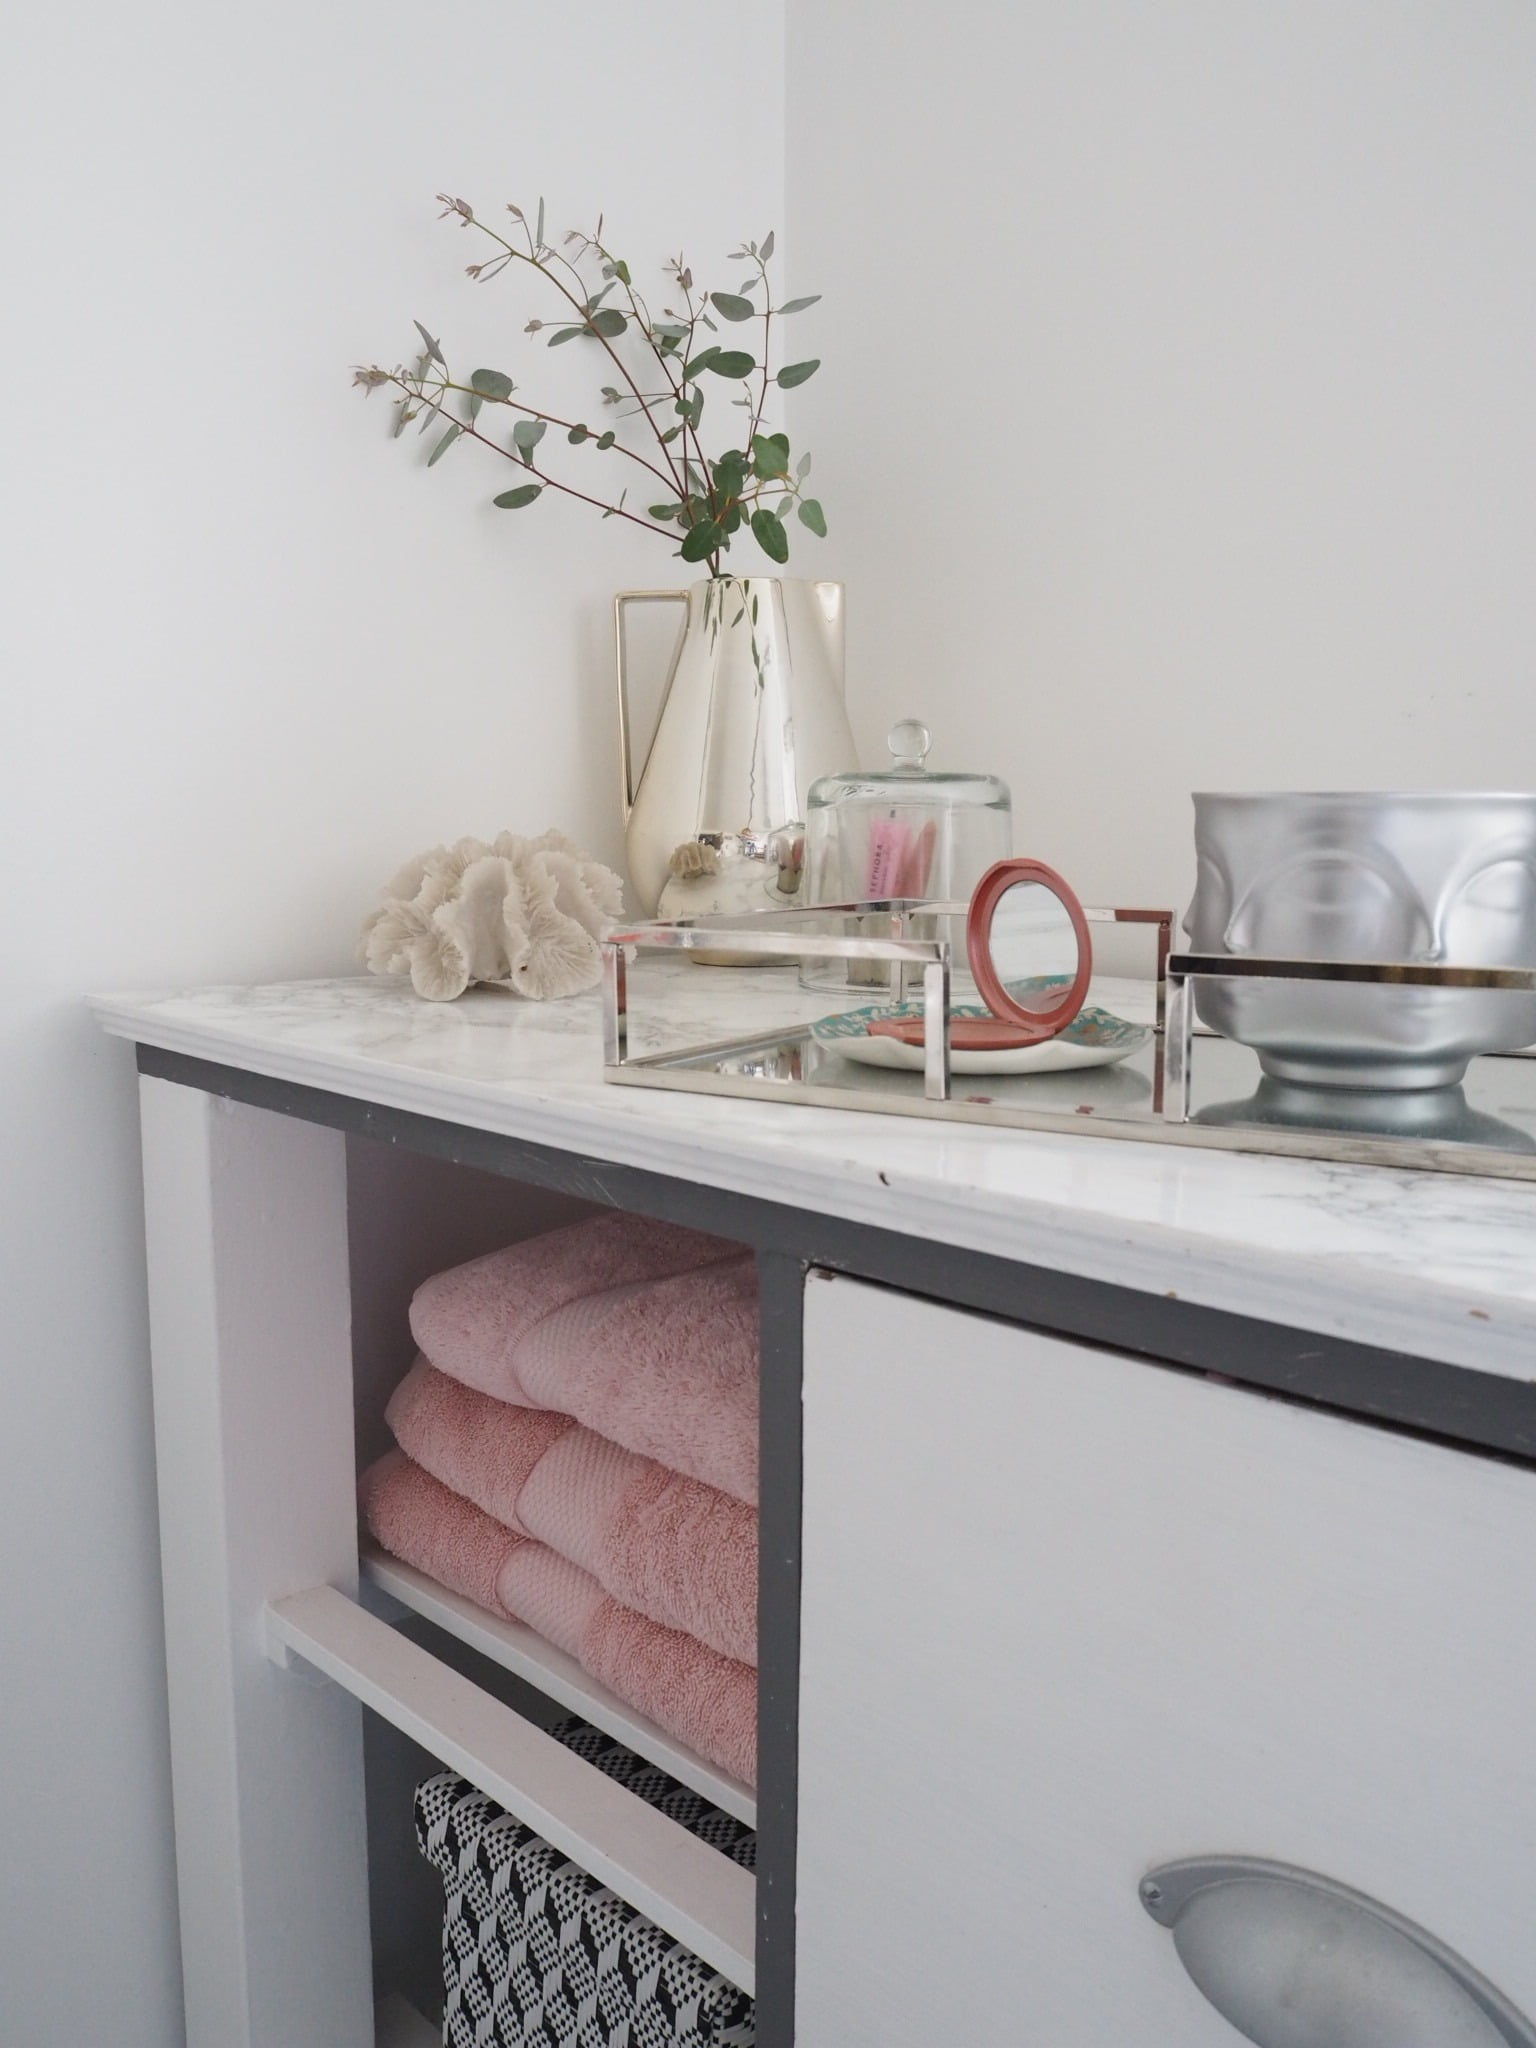 Looking to update your bathroom? Here's my 10 Budget Bathroom Makeover Ideas that won't break the bank by Interior Stylist & Blogger Maxine Brady